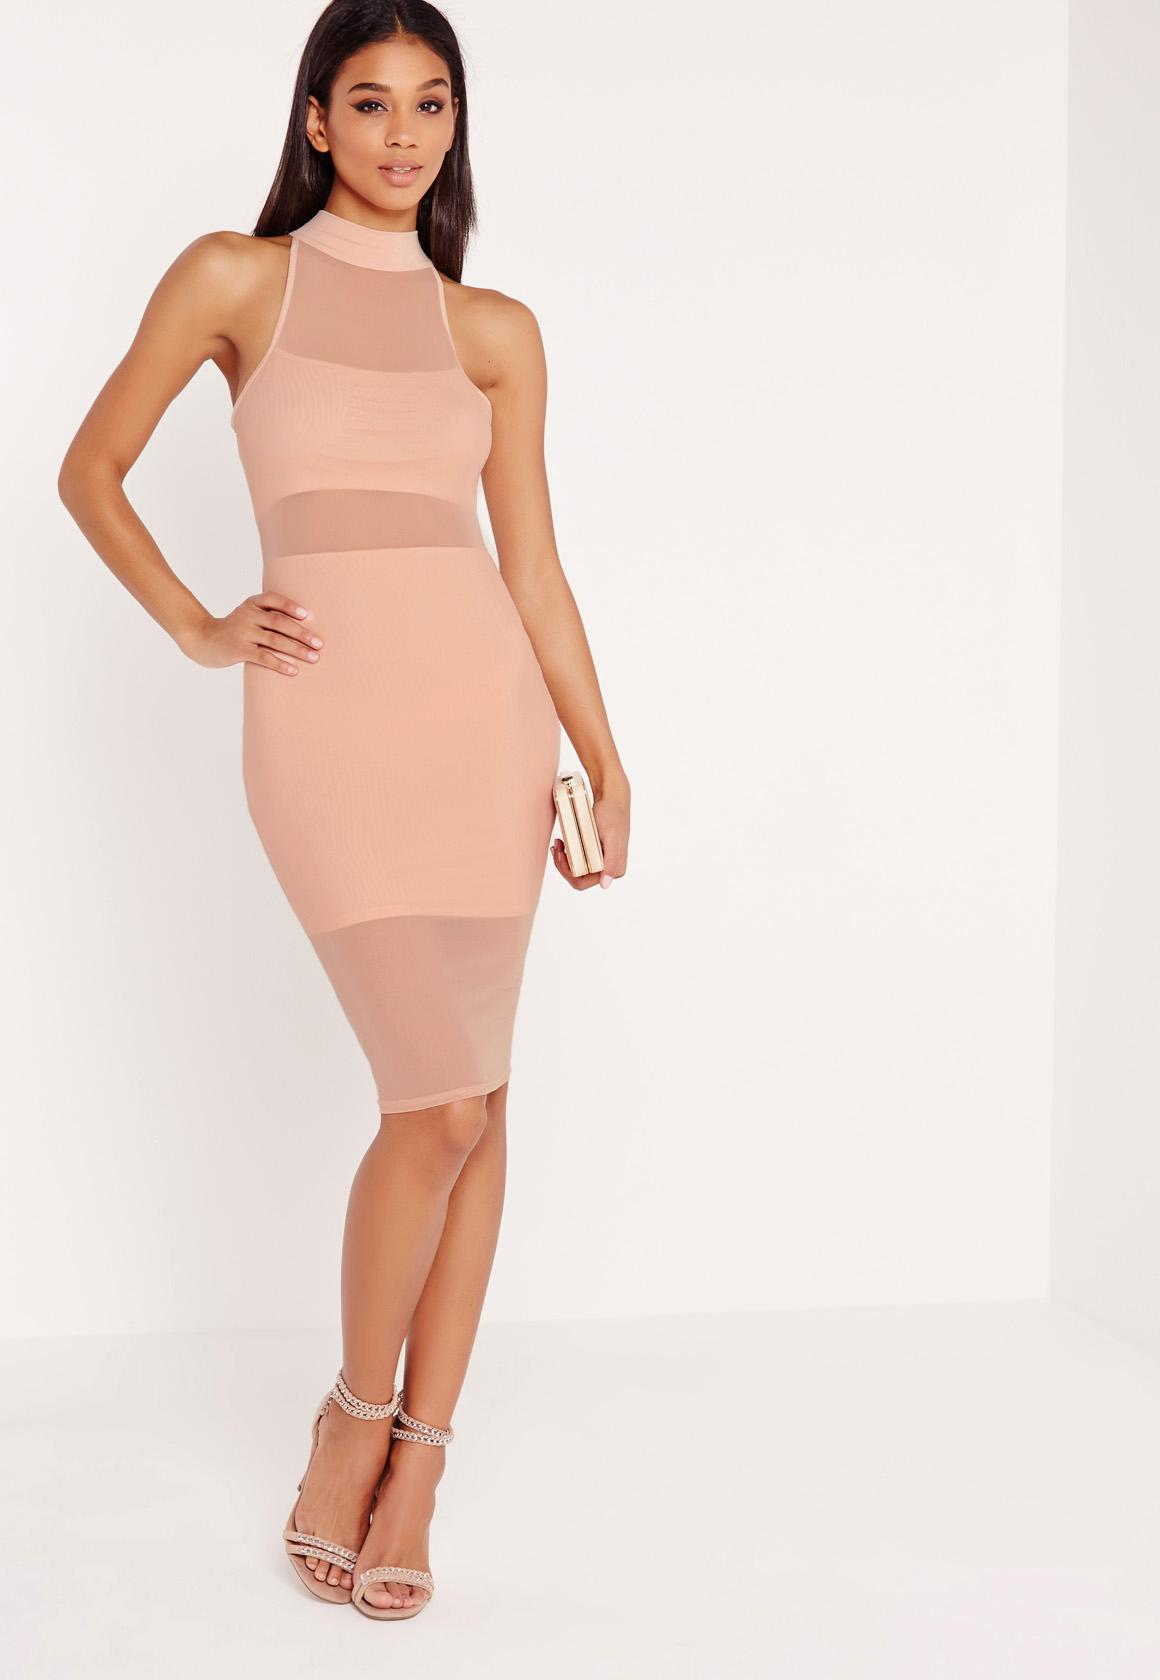 Nude High Neck Mesh Detail Midi Dress Pretty Little Thing Free Shipping Factory Outlet Visit New Cheap Online Cheap Sale Clearance Store Cheap Sale Genuine Popular Sale Online lp8kBqgT